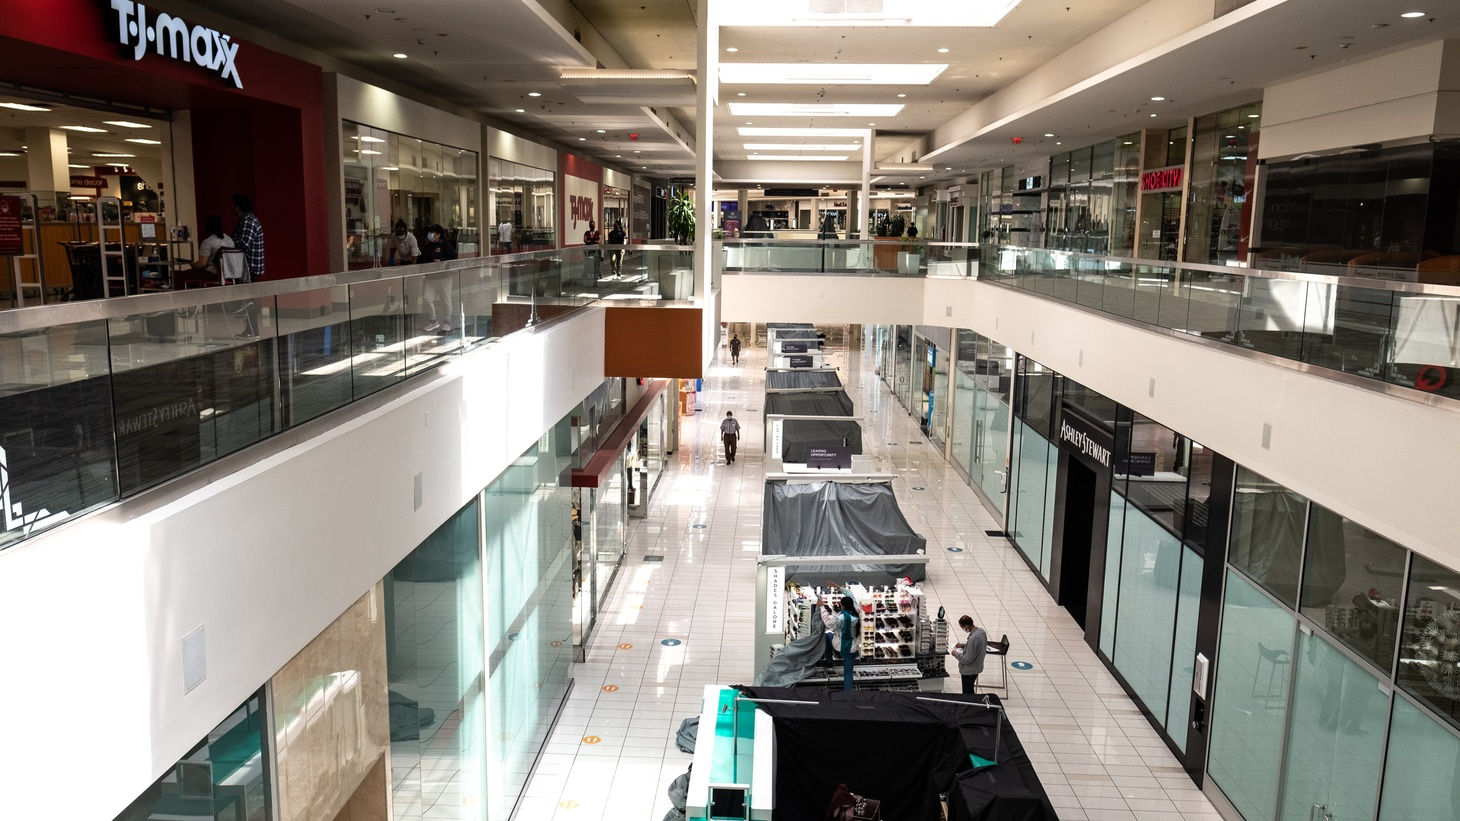 The Baldwin Hills Crenshaw Mall has no traffic these days, and many businesses there are struggling. May 3, 2021.